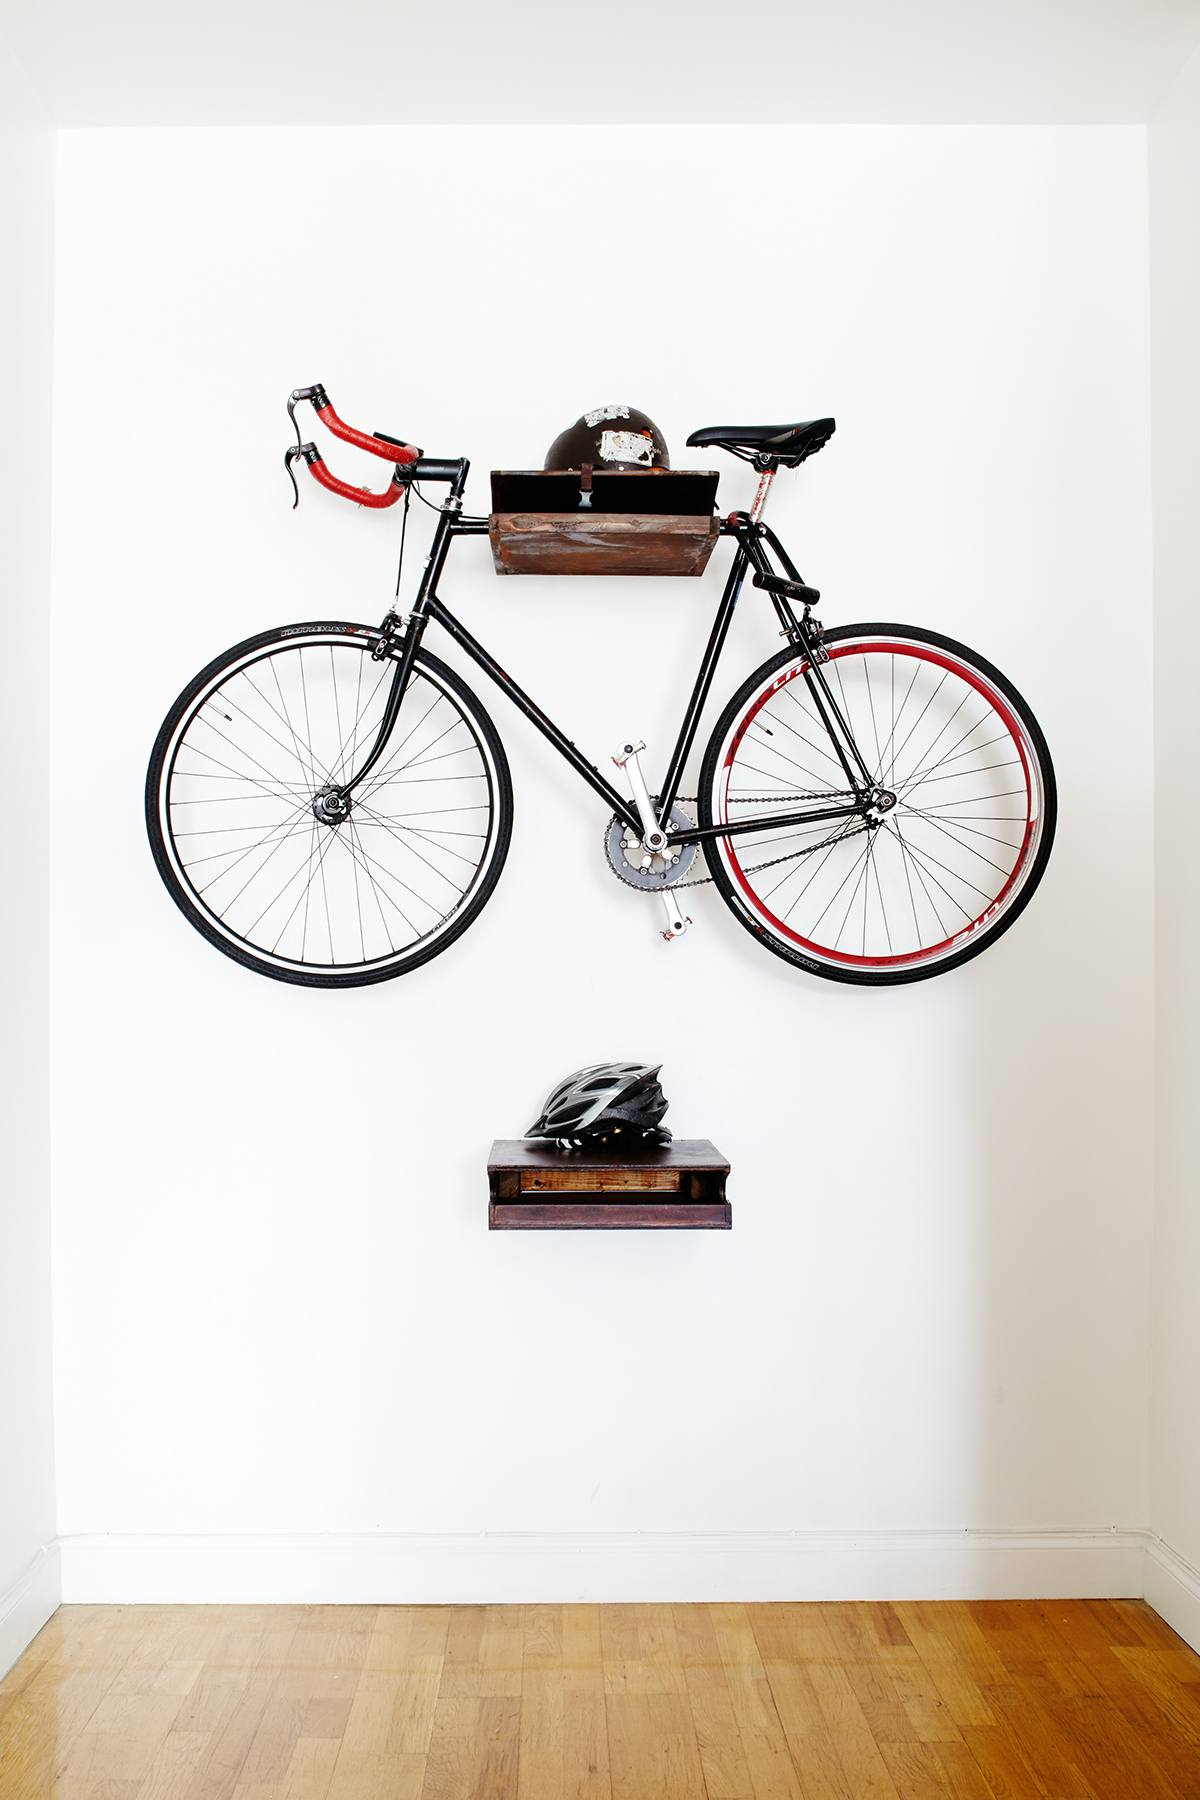 sasha maslov brooklyn navy yard loft bike shelf